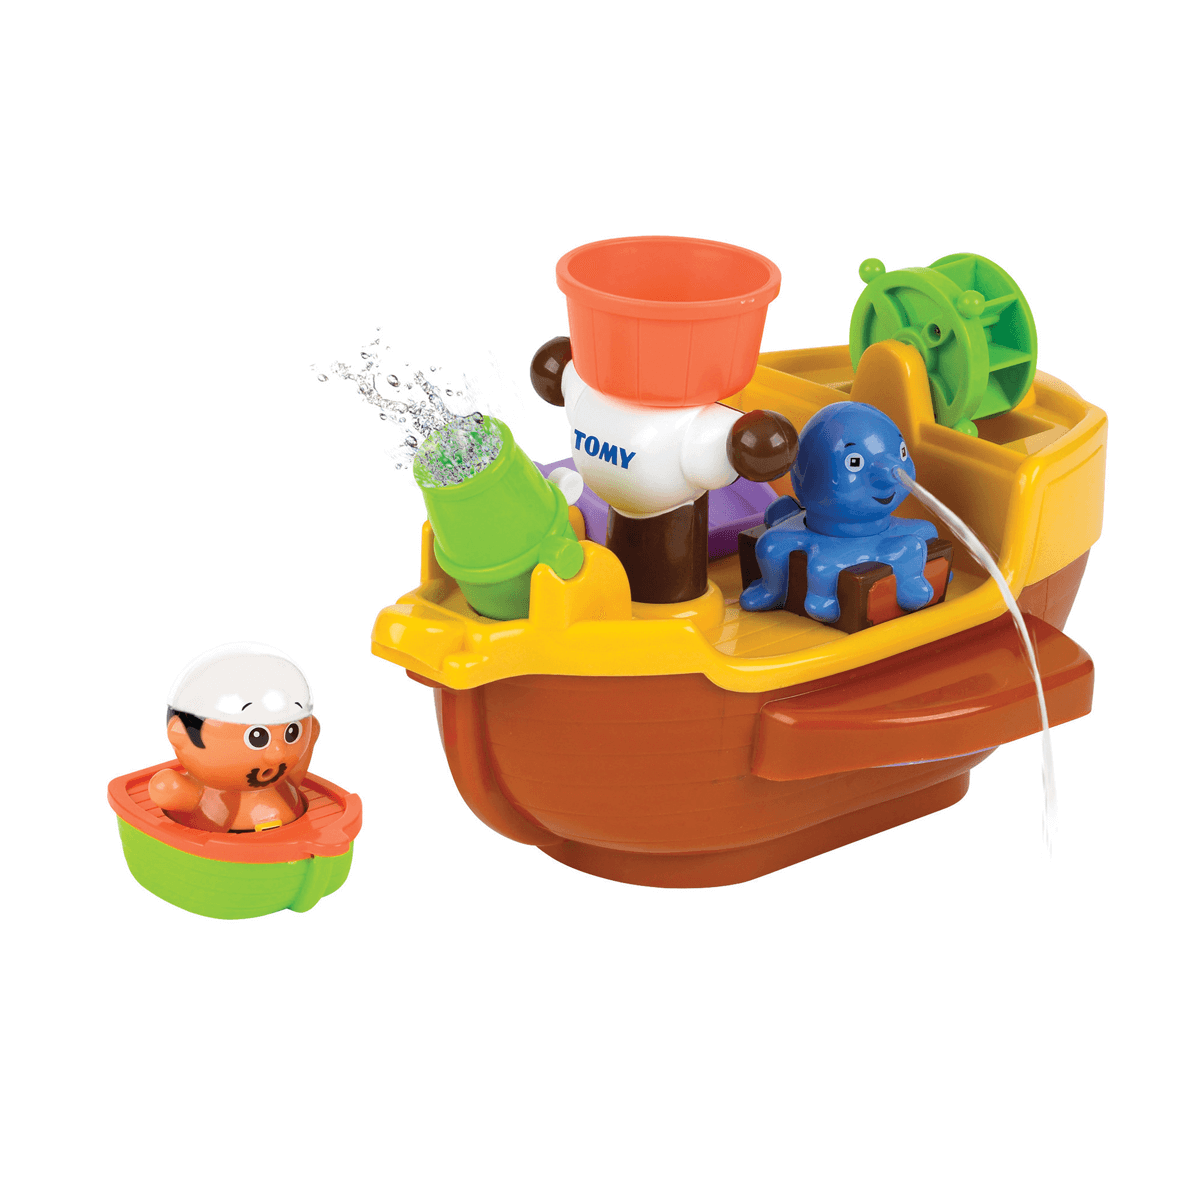 Tomy Toomies Pirate Ship Bath Toy from Early Learning Center